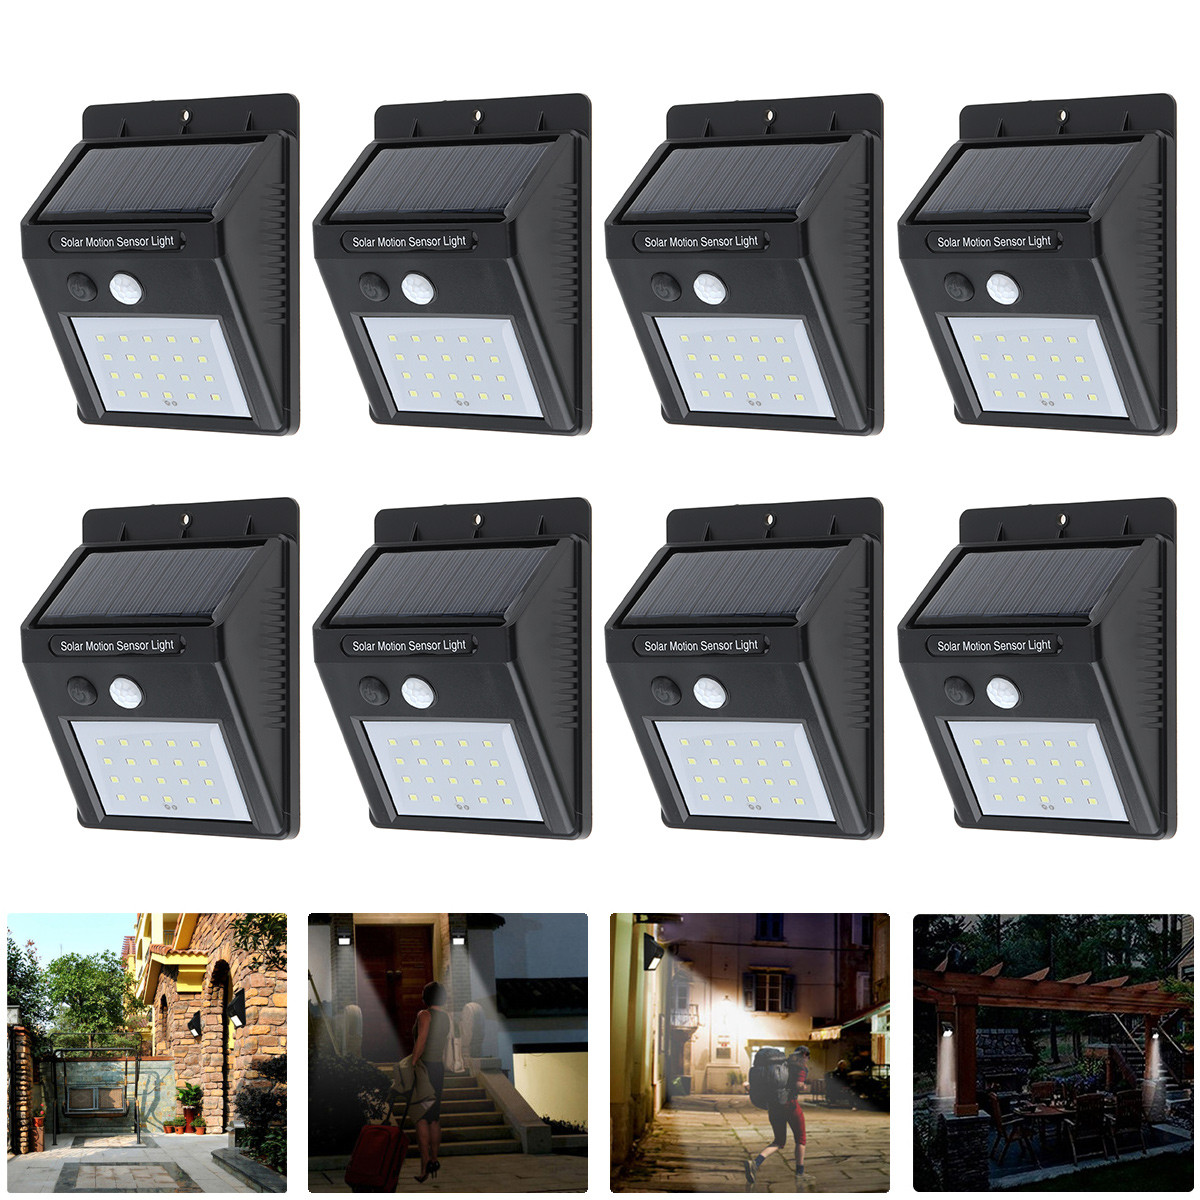 8pcs Rechargeable 20 LED Solar Power Lamp PIR Motion Sensor Waterproof Security Wall Light for Outdoor Garden Yard Driveway Path solar motion sensor light with 60 led rechargeable wireless led security lights with 3 modes for garden patio yard driveway